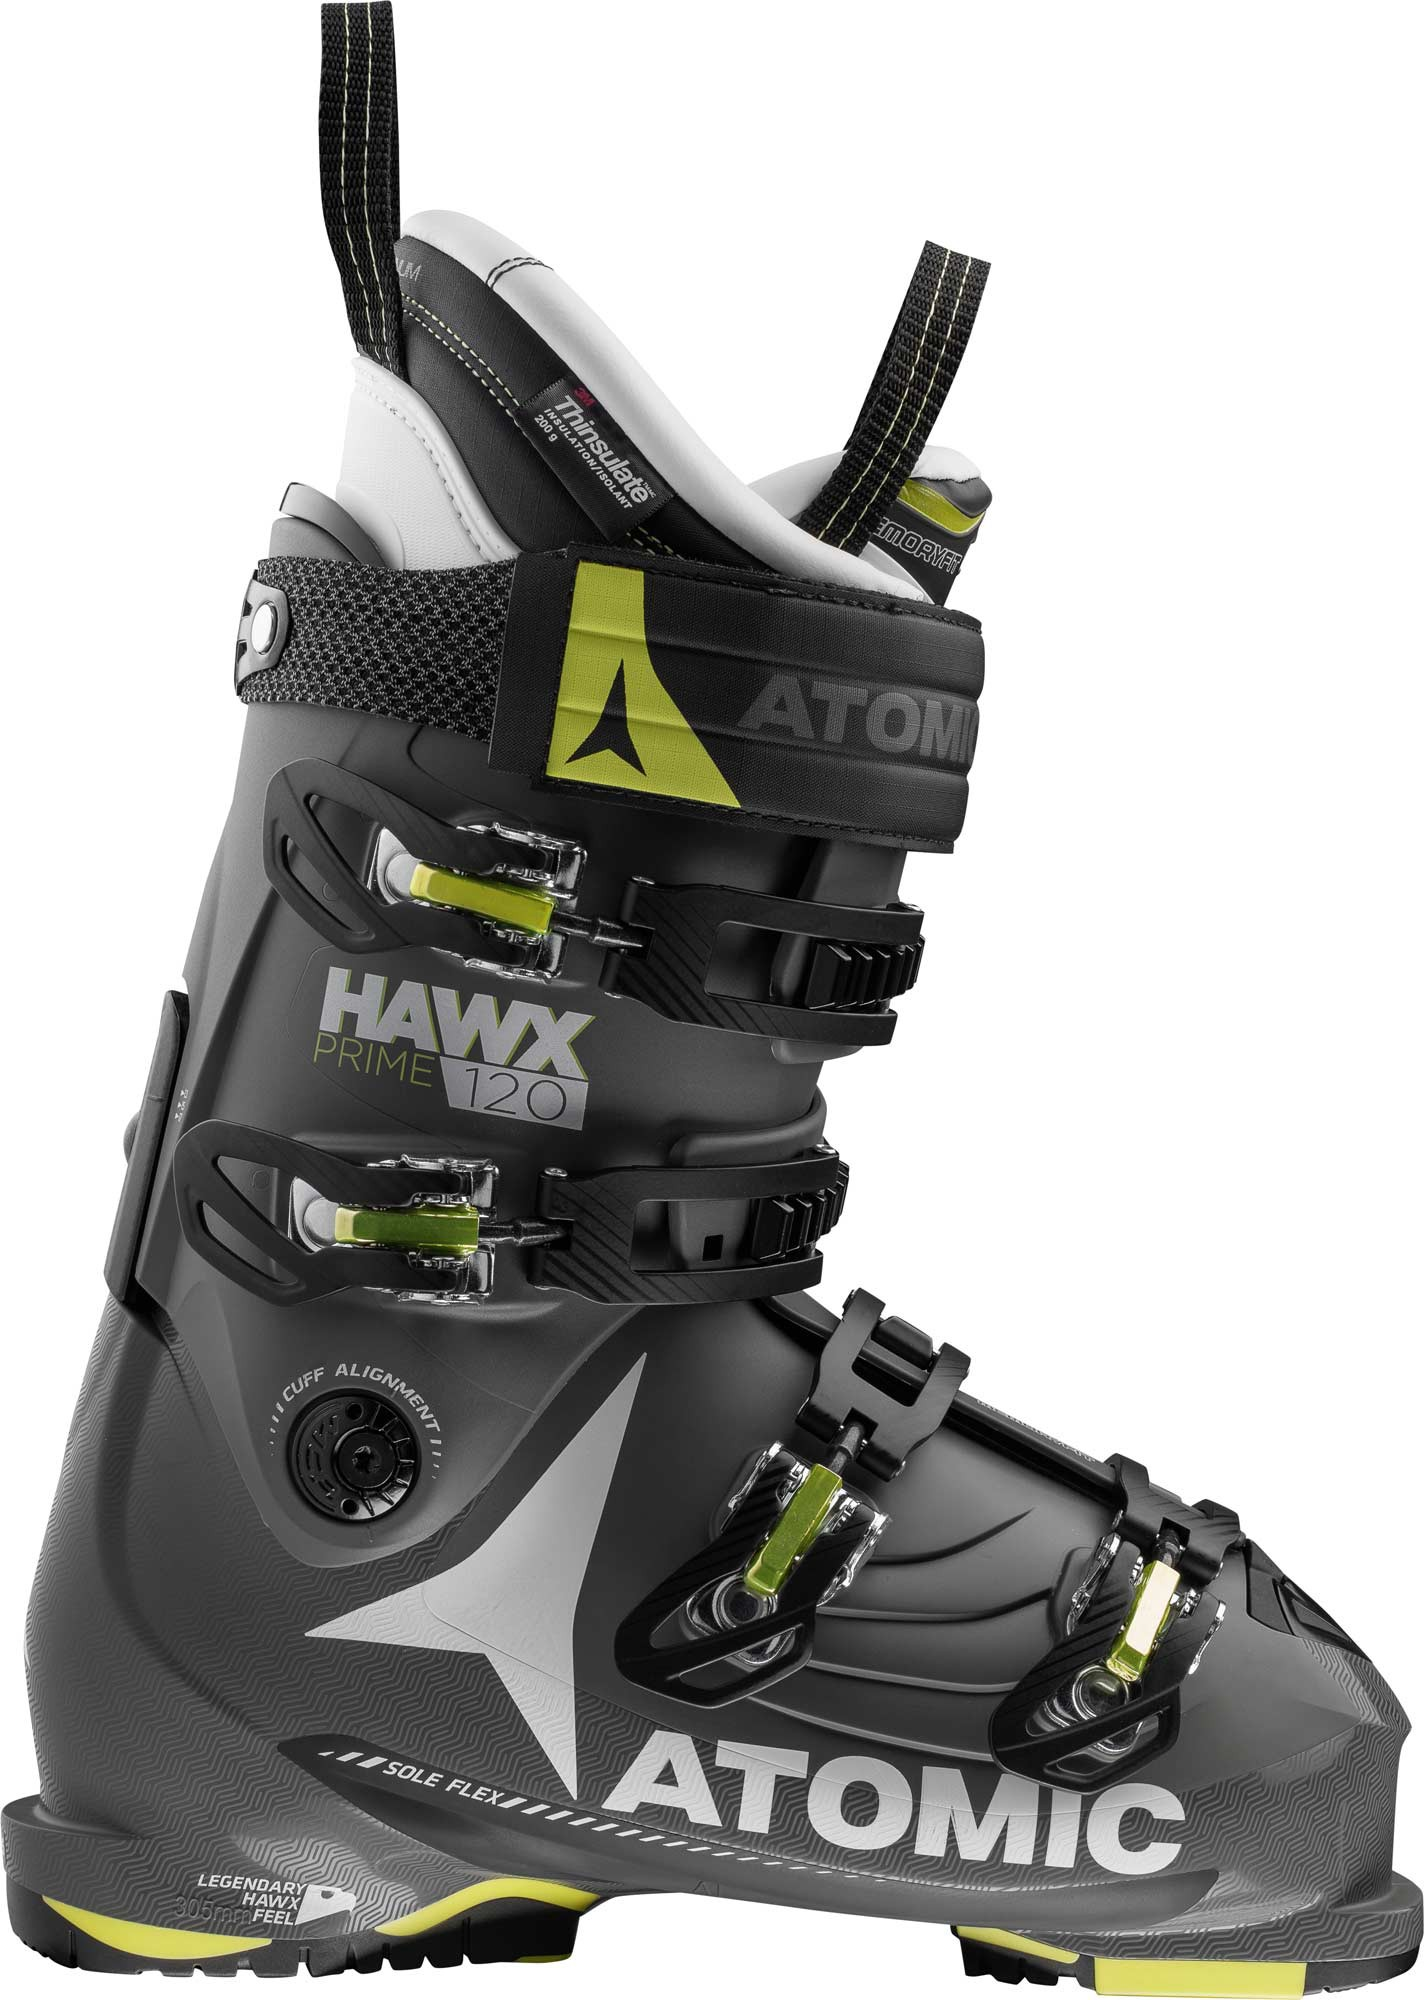 Atomic Hawx Prime 120 - 1 Paar All Mountain Skischuhe - MP 31/31.5